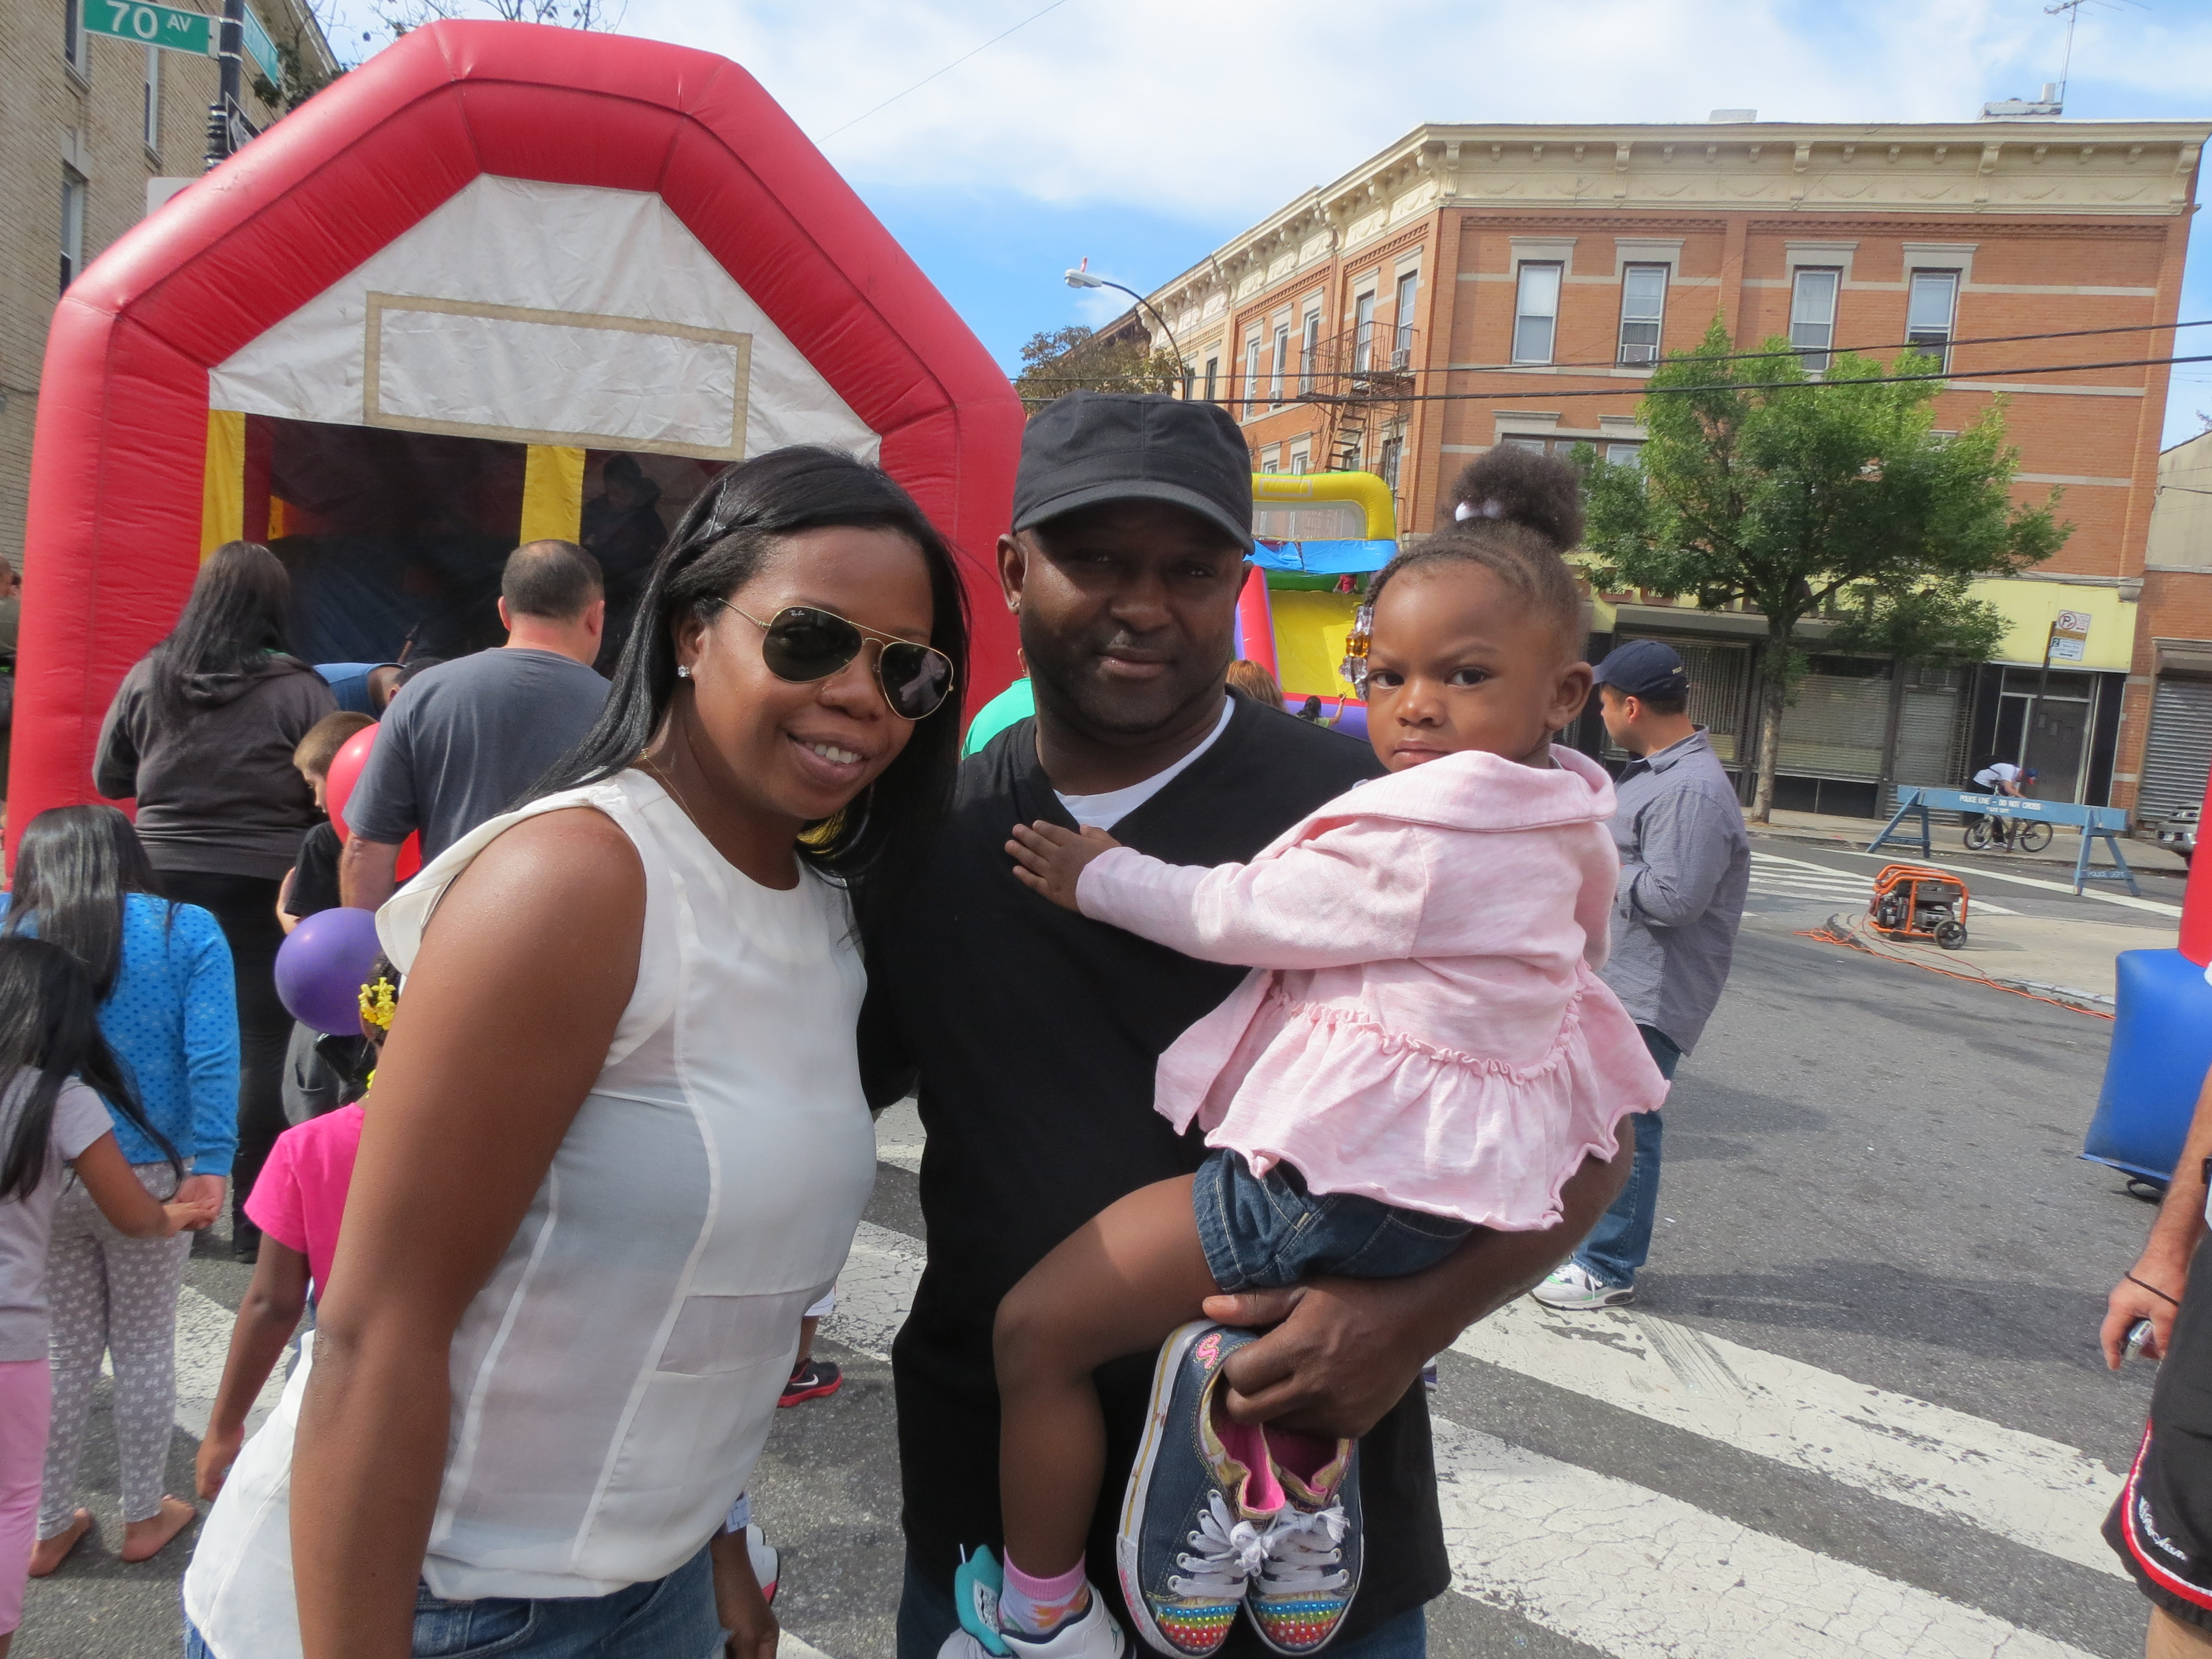 Glenda, left, 2-year-old London, and Anthony Shaw, of Ridgewood, enjoy the afternoon at the festival.